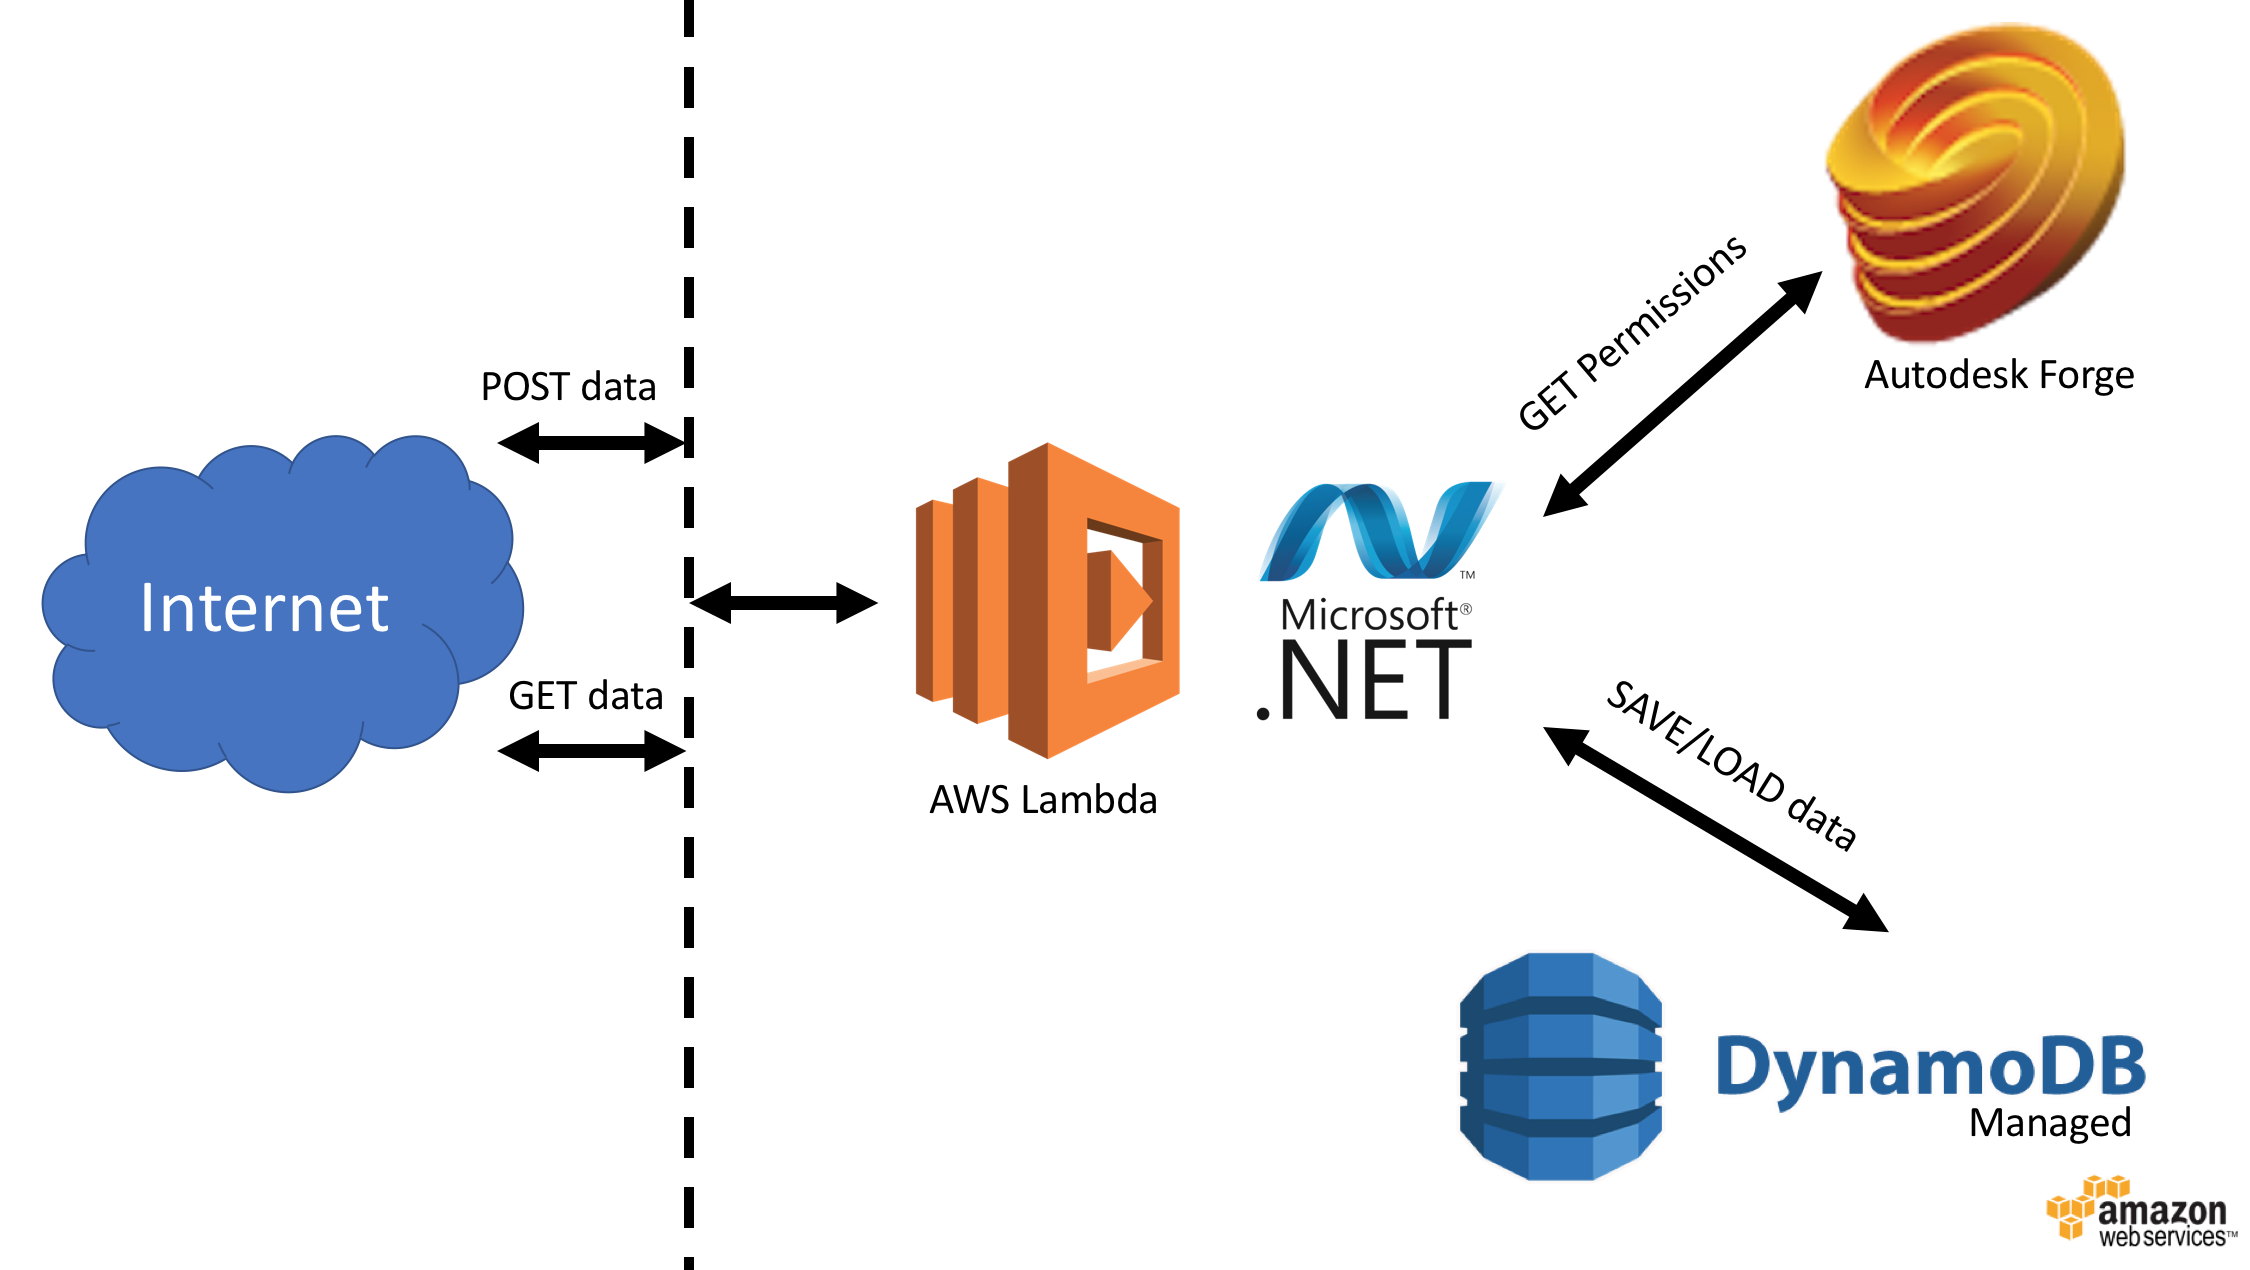 Storing data on Amazon DynamoDB ( NET) | Autodesk Forge